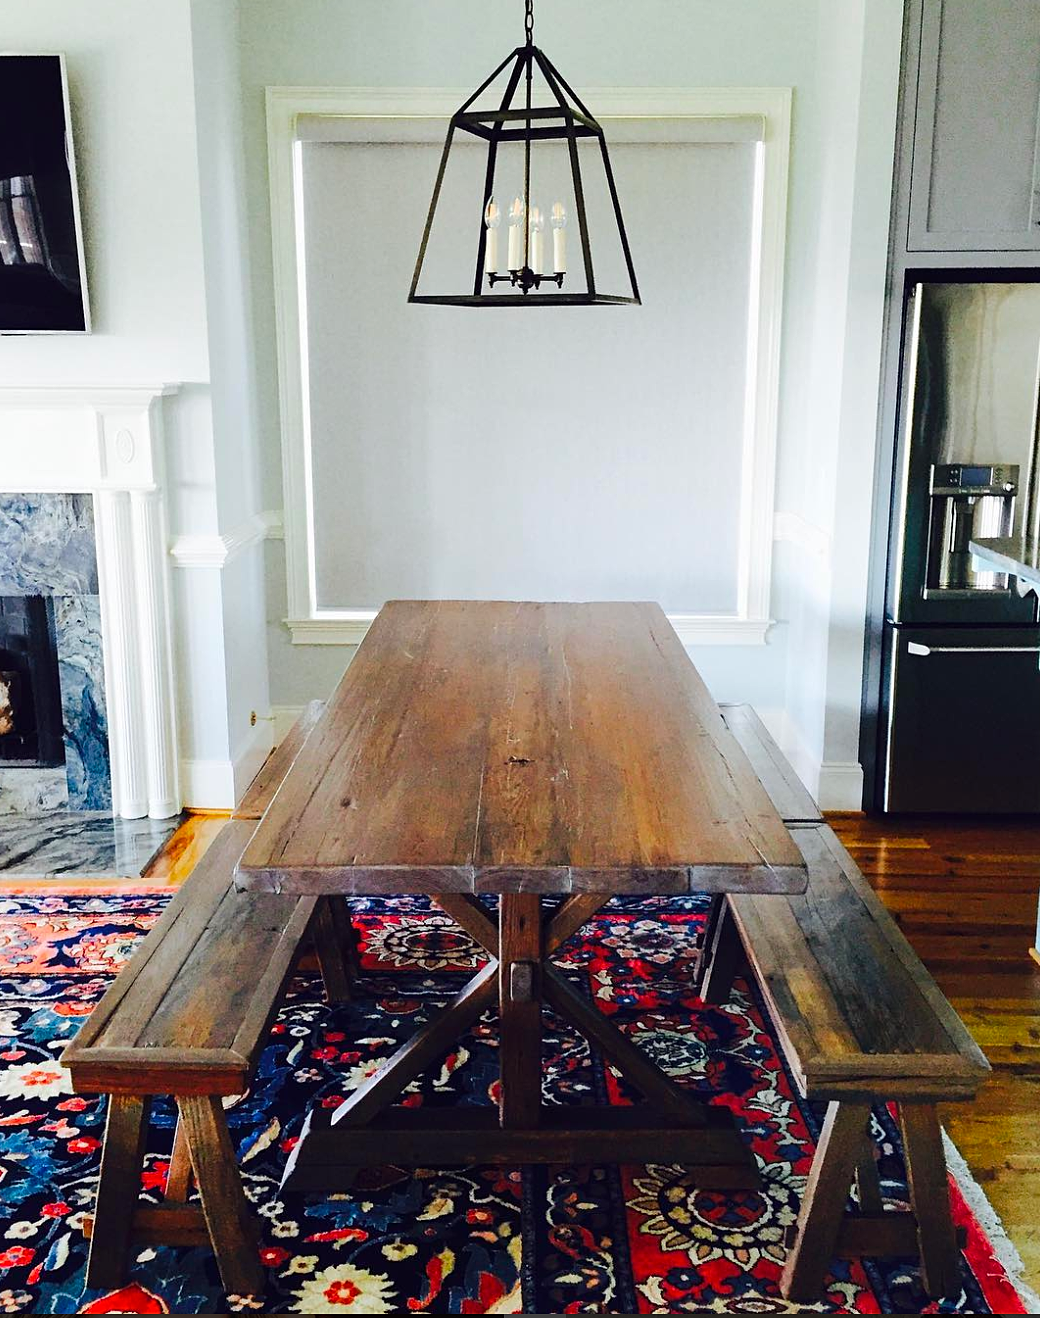 Reclaimed oak barn wood trestle table with coordinating benches. Handmade  in Charleston, SC. - Salt Wood Co. - Custom Reclaimed Wood Furniture In Charleston, SC